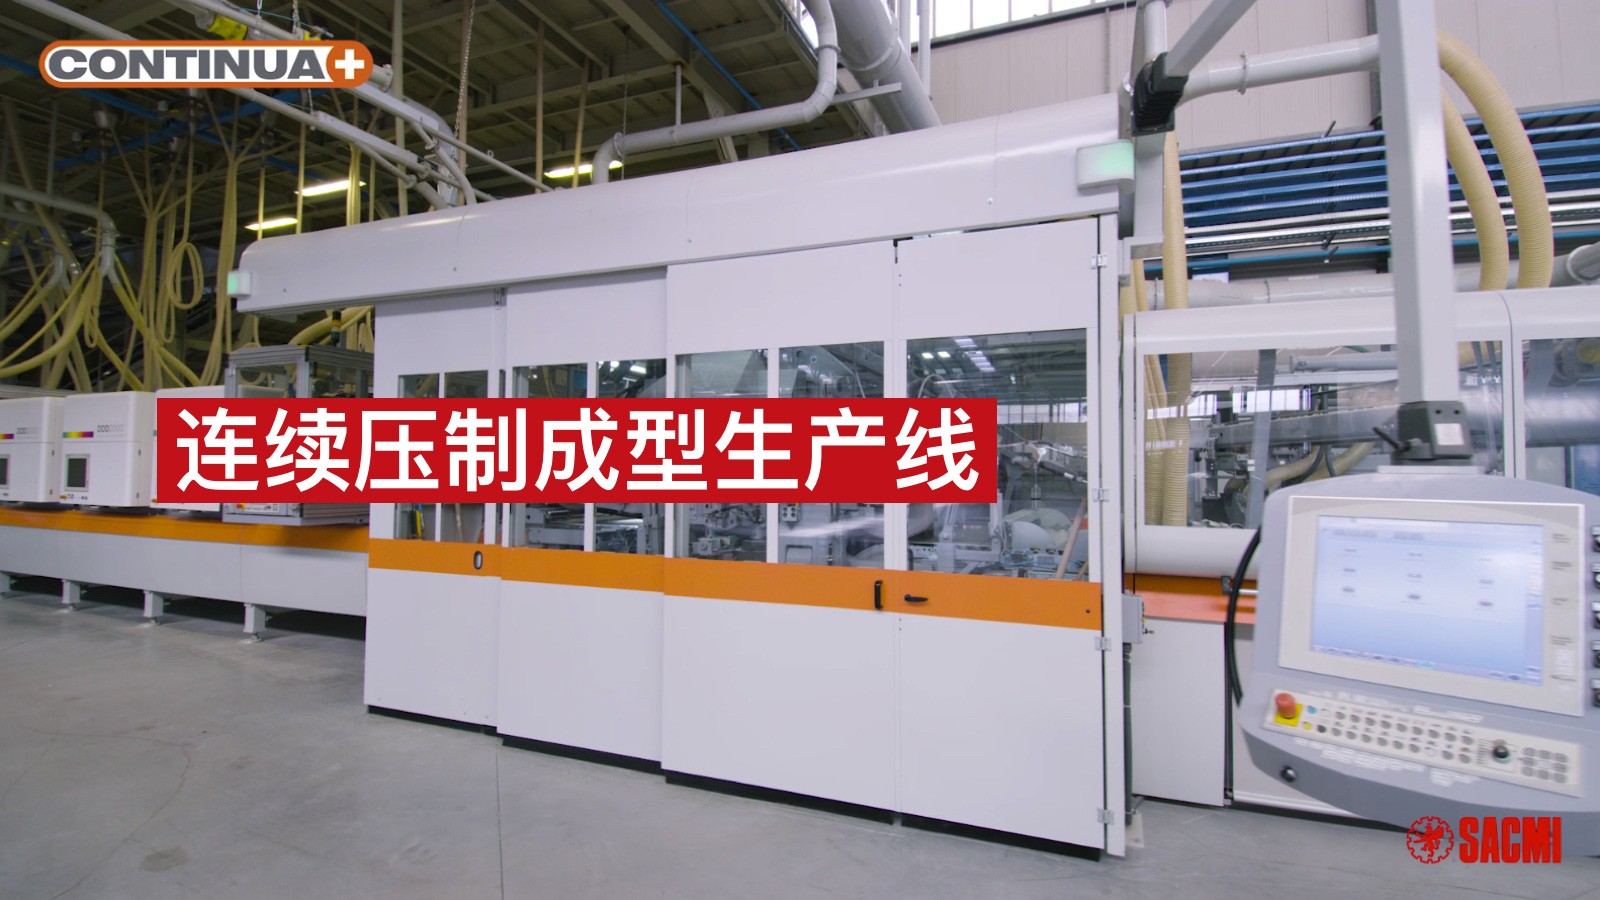 Continua+ full compacting line